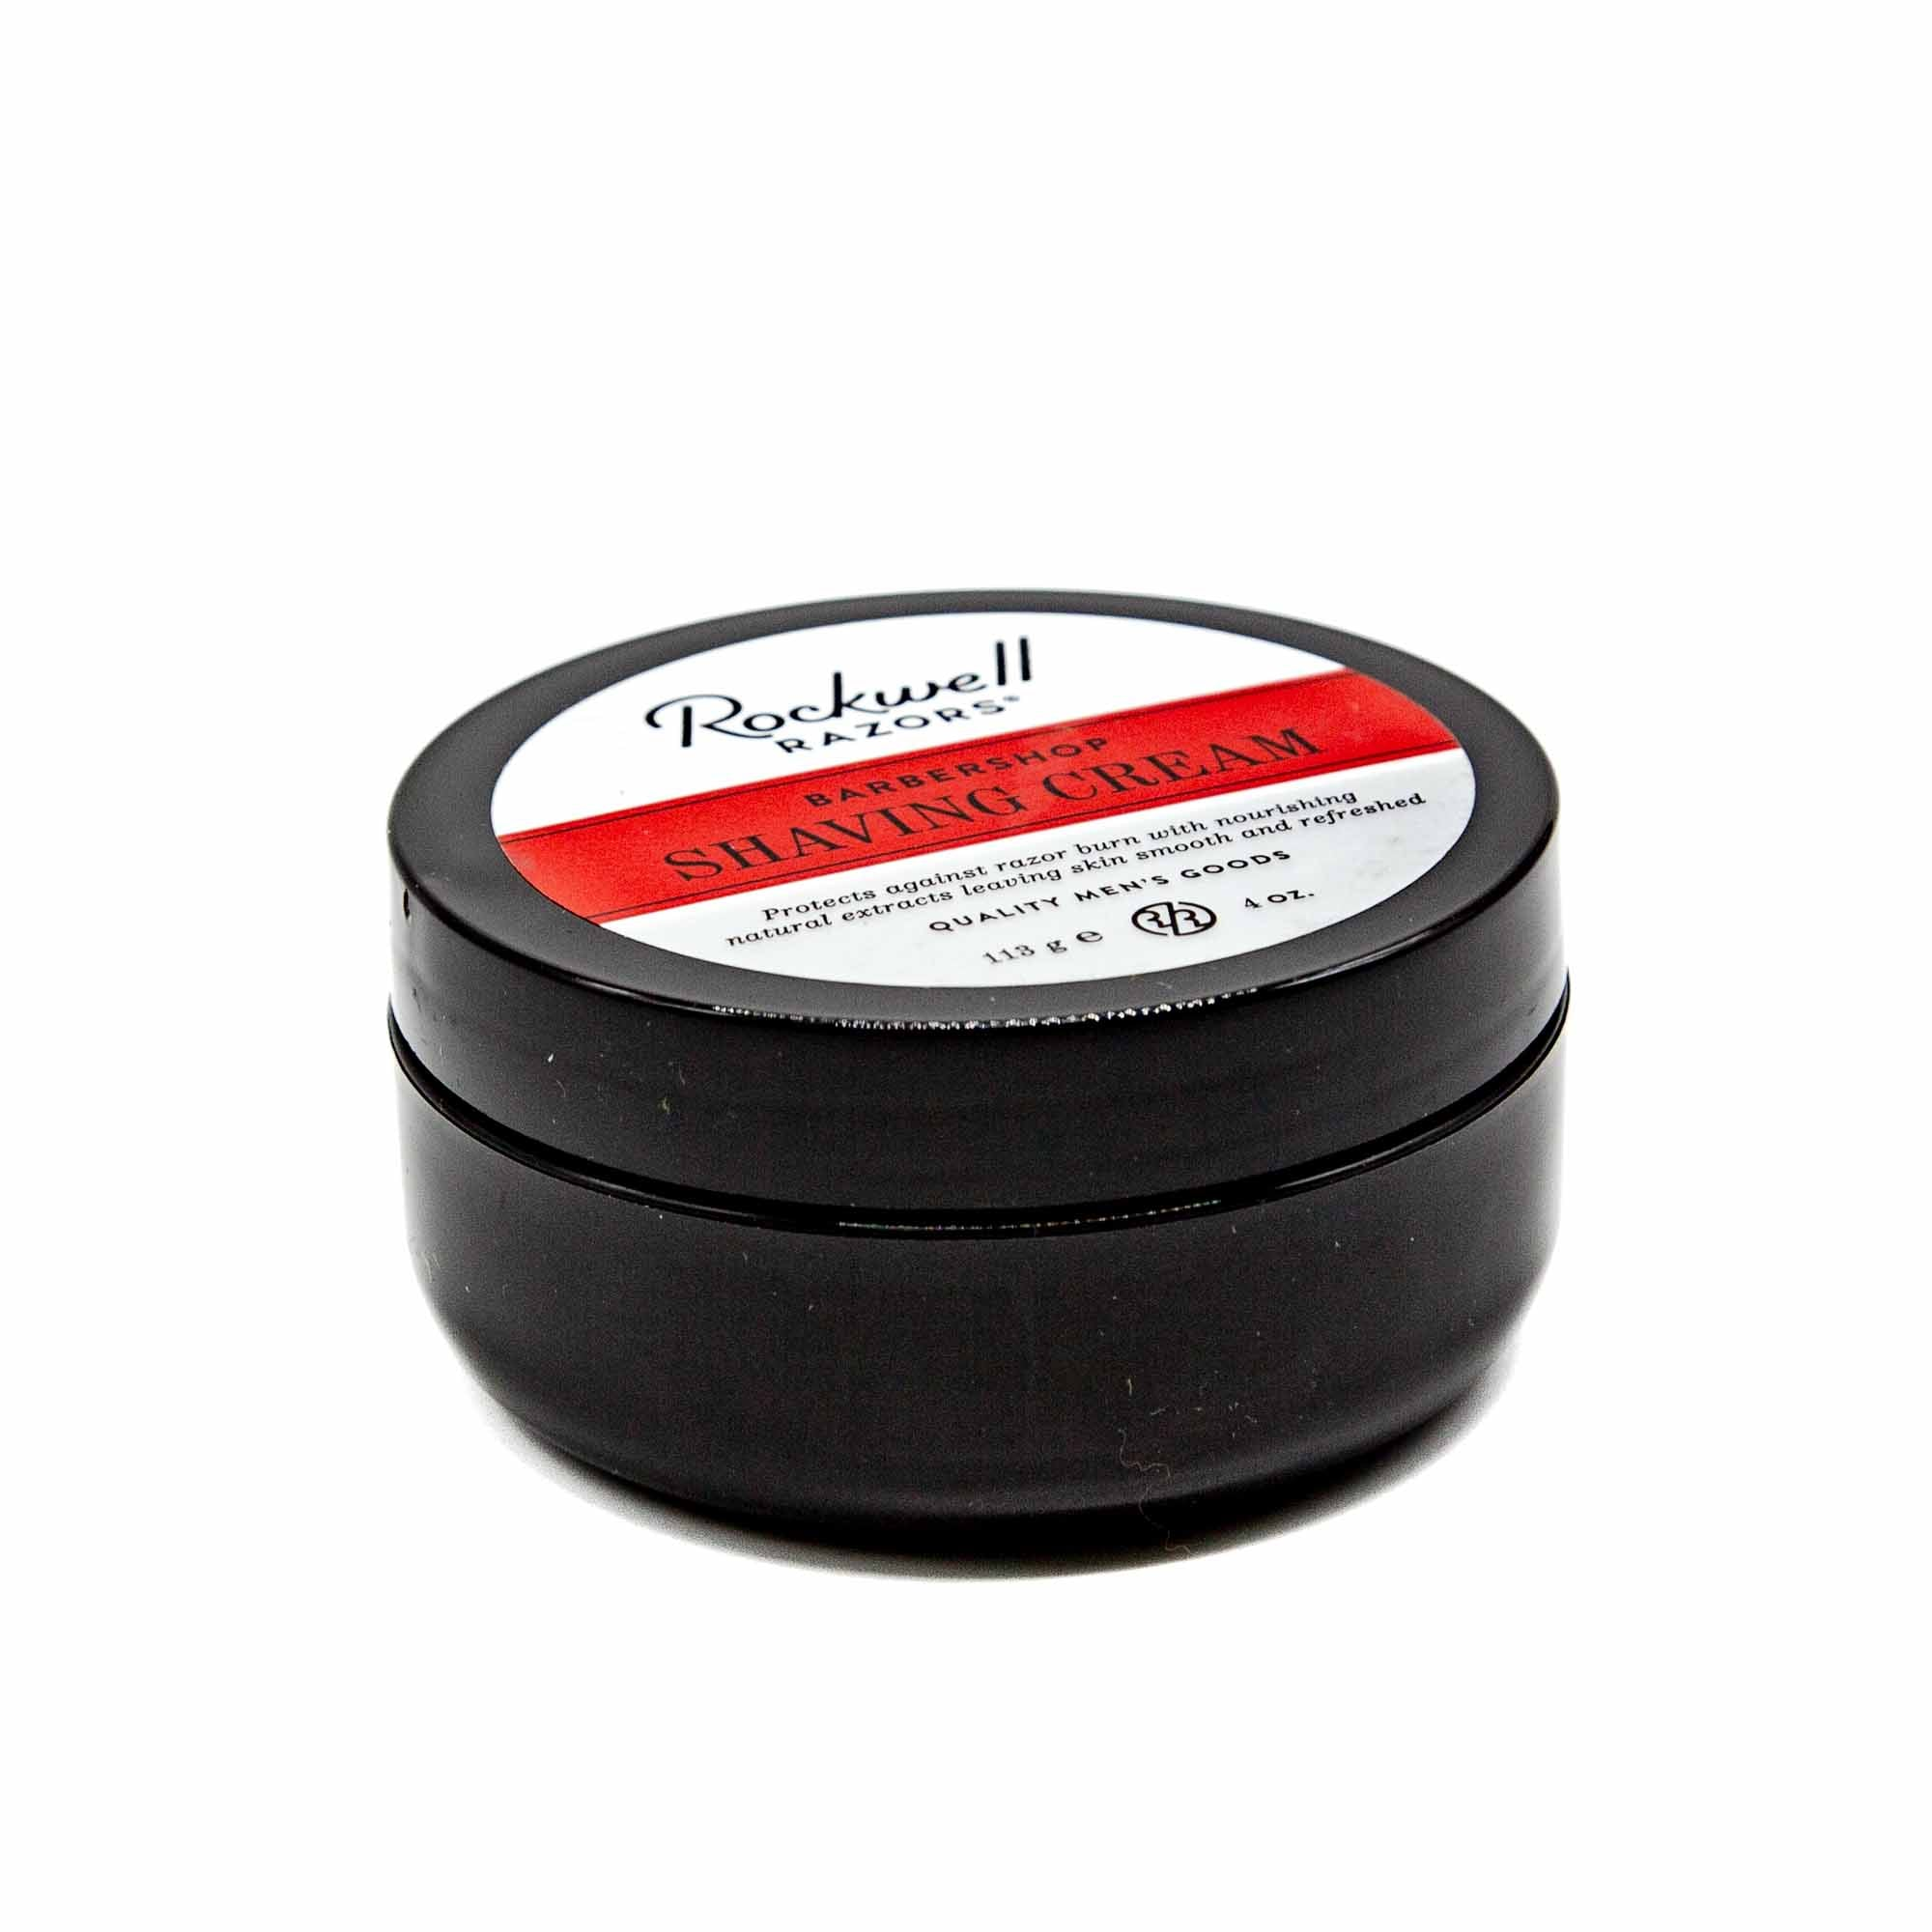 Rockwell Razor Barbershop Shaving Cream - Mortise And Tenon